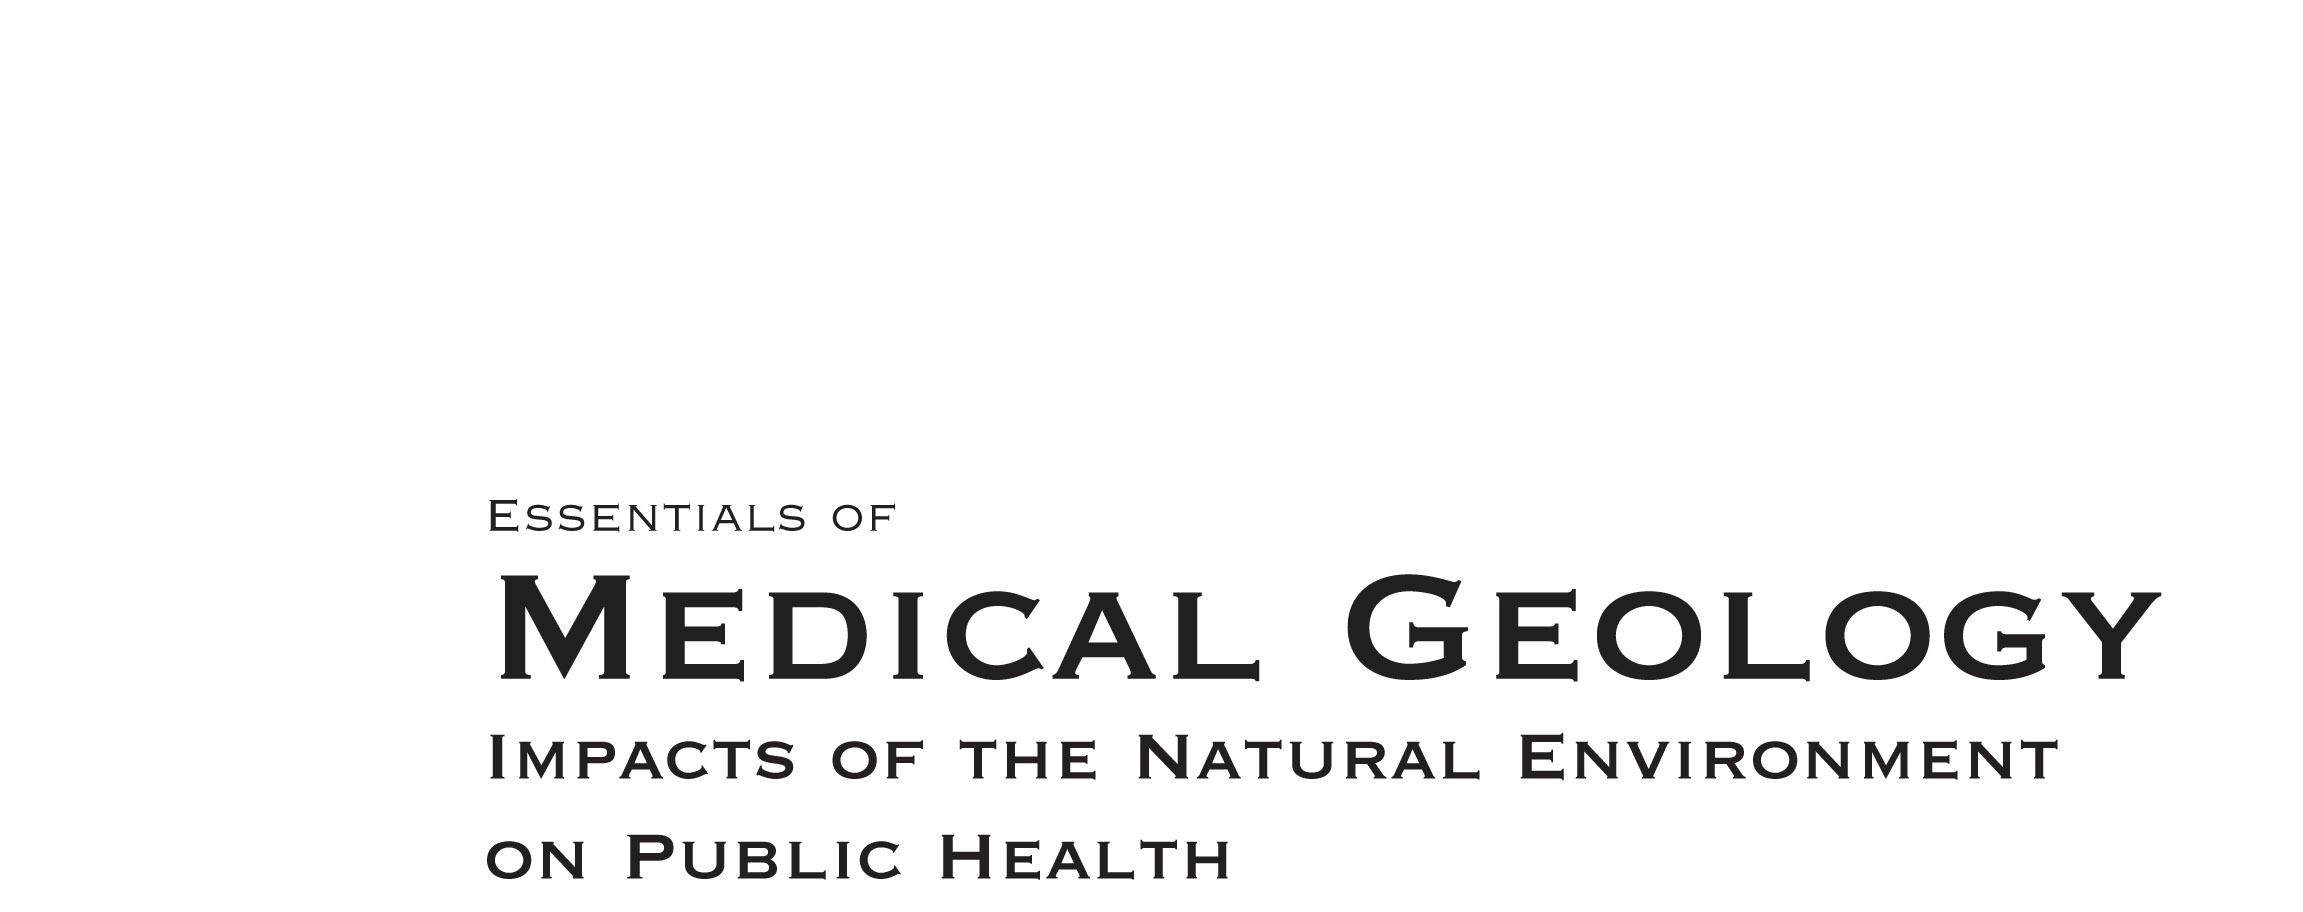 Essentials of Medical Geology: Impacts of the Natural Environment on Public Health By: Selinus, Olle